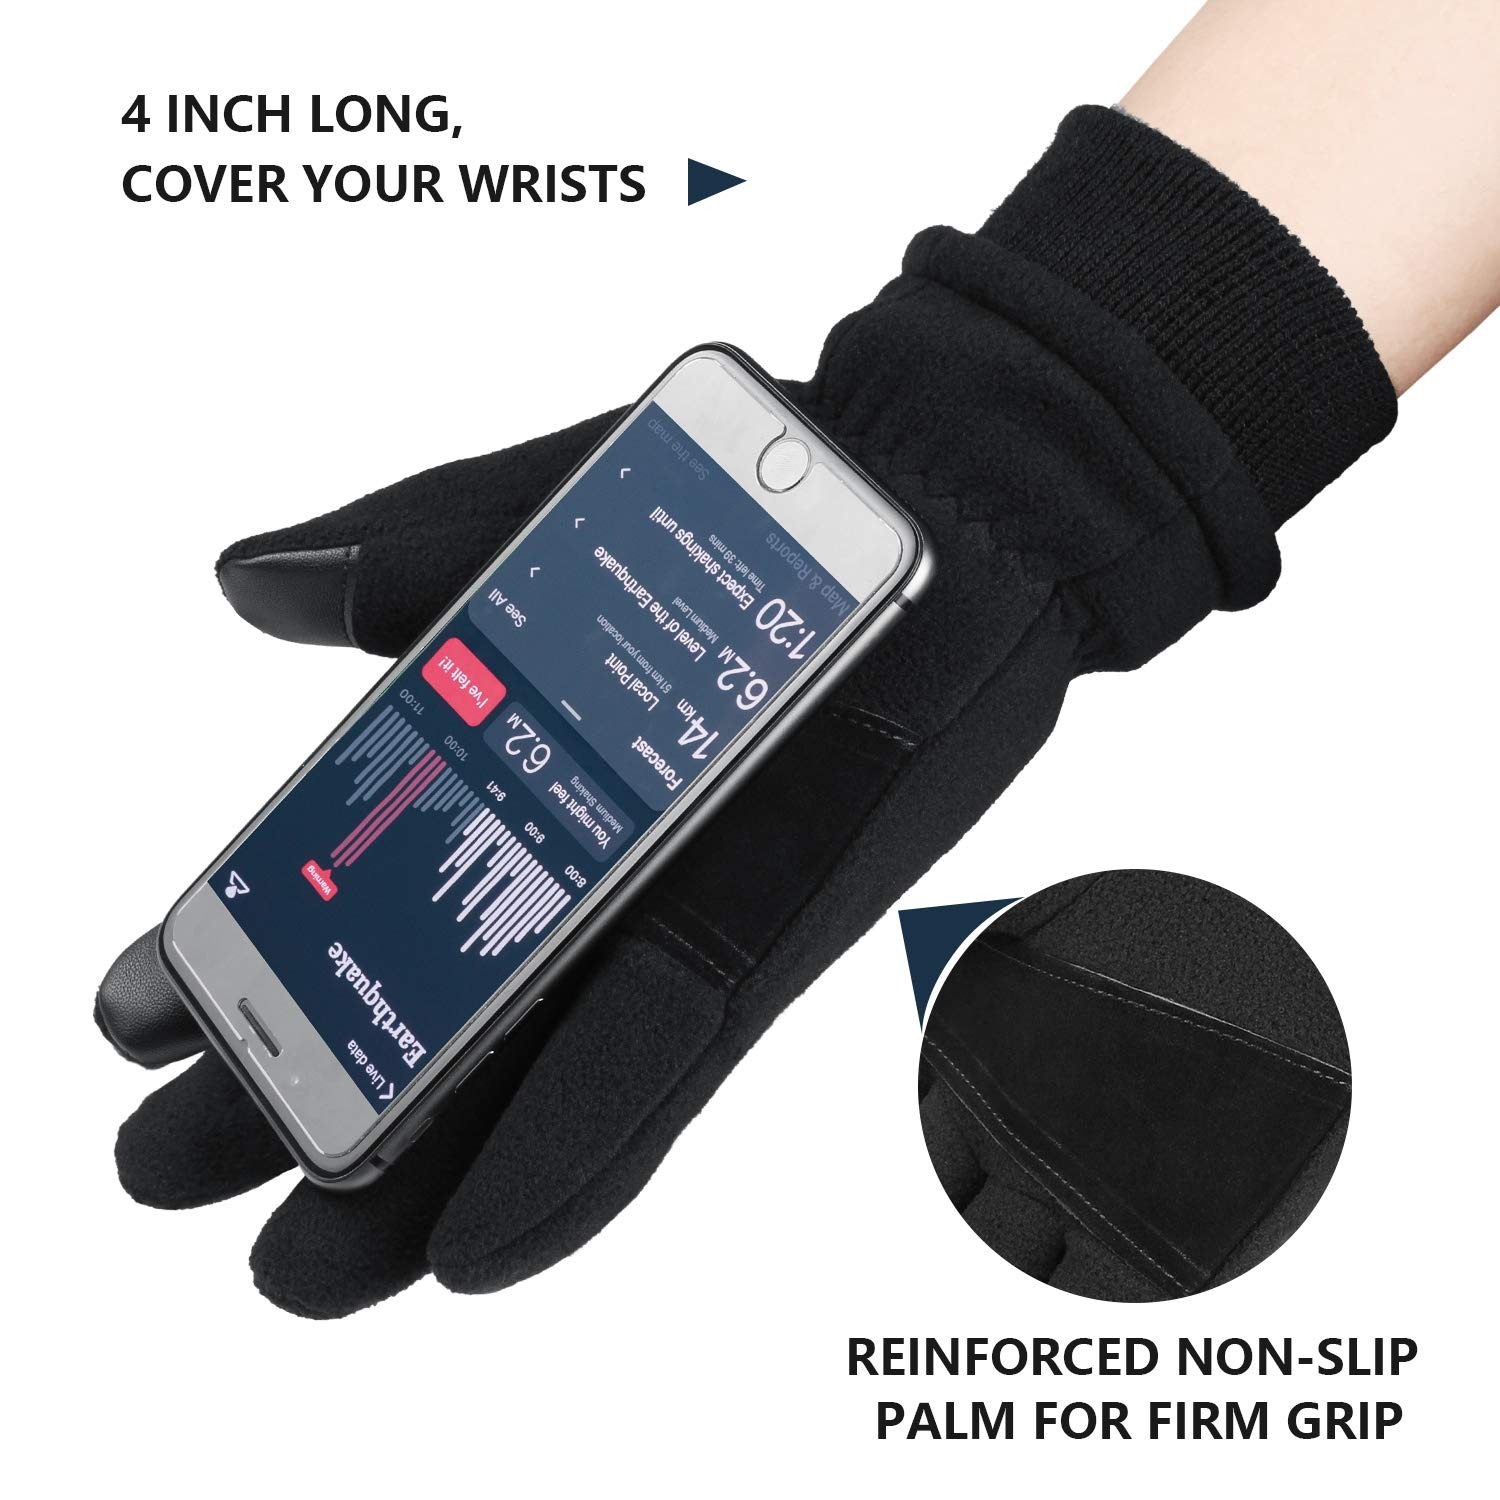 Cierto Mens And Womens Winter Thermal Fleece Gloves With Touchscreen /& Water Resistant Function For 20℉ Cold Weather With Warm Protection Small